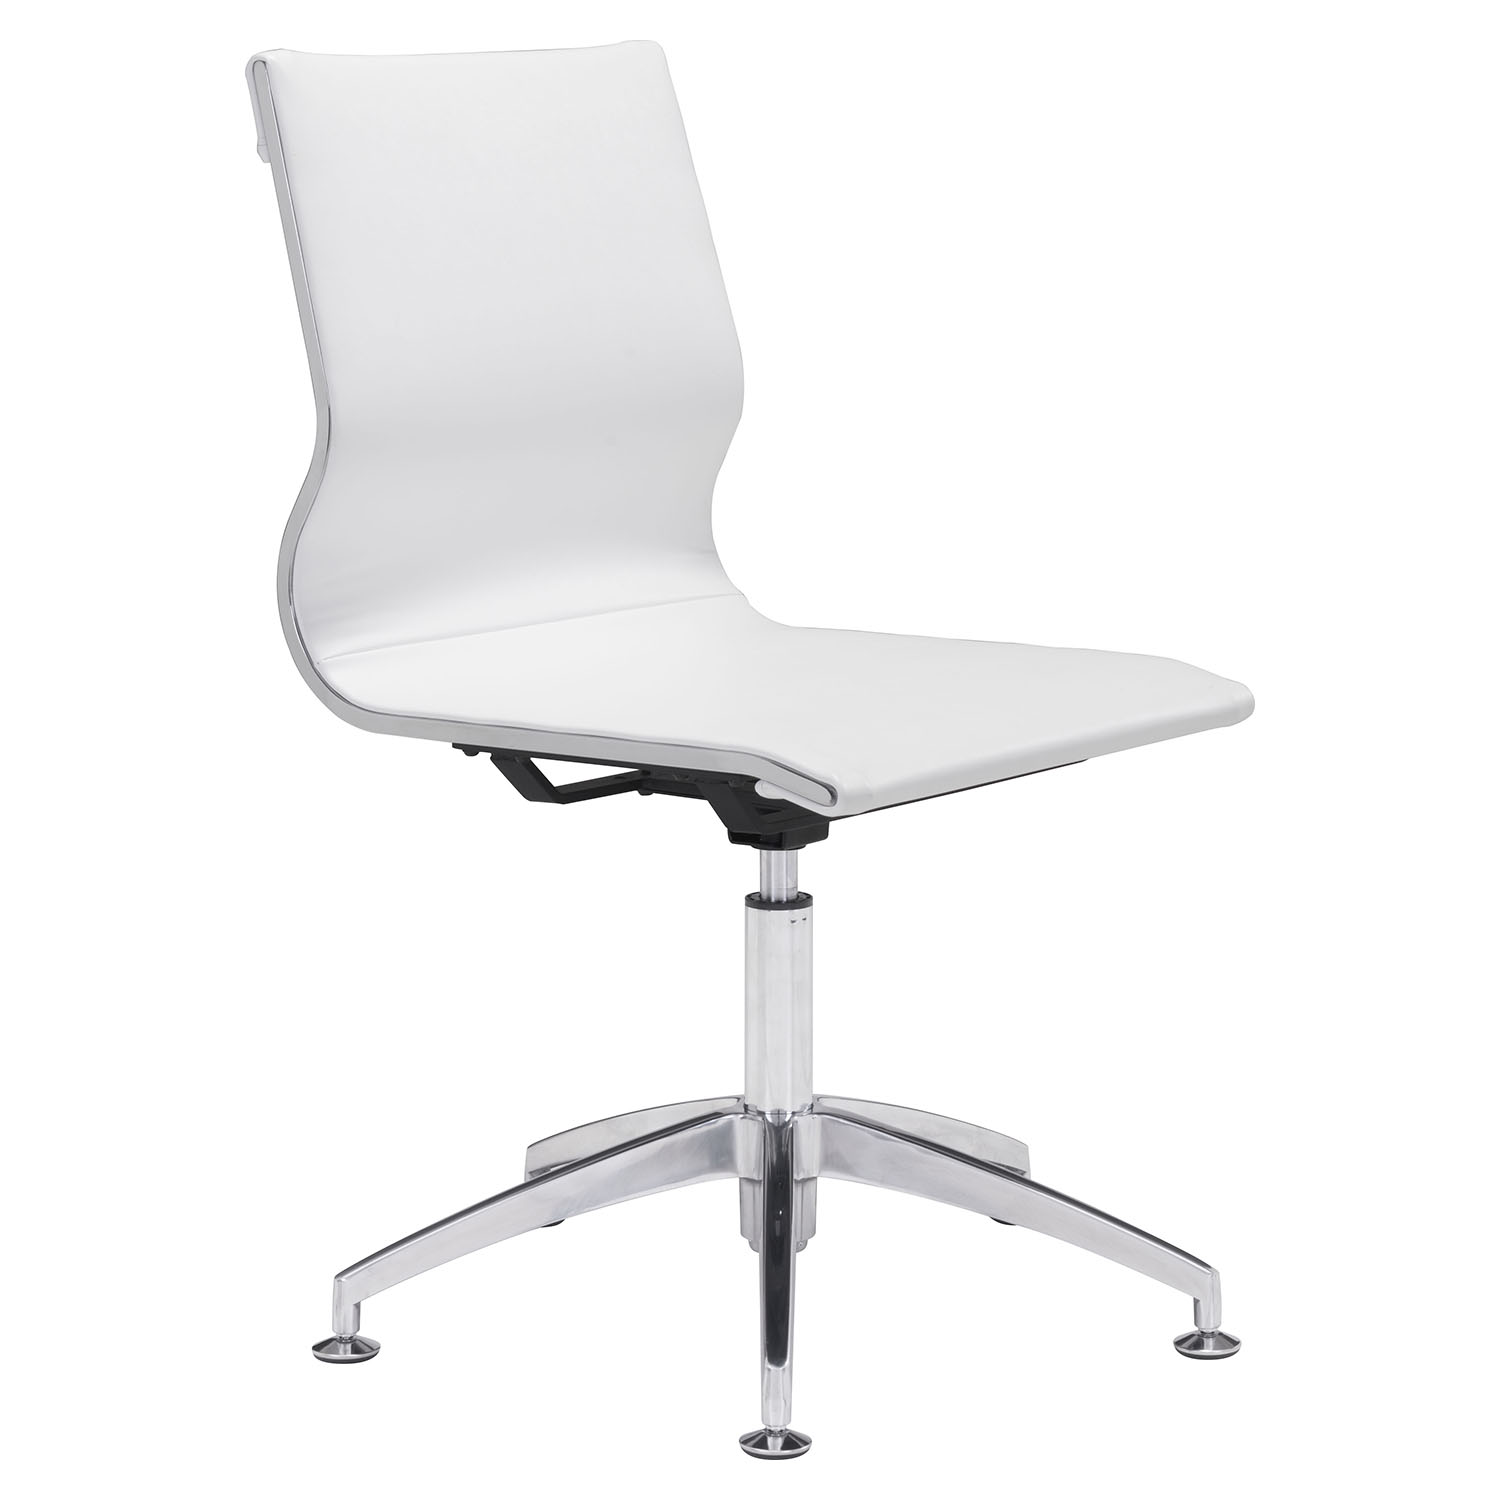 Glider Conference Chair - White - ZM-100378